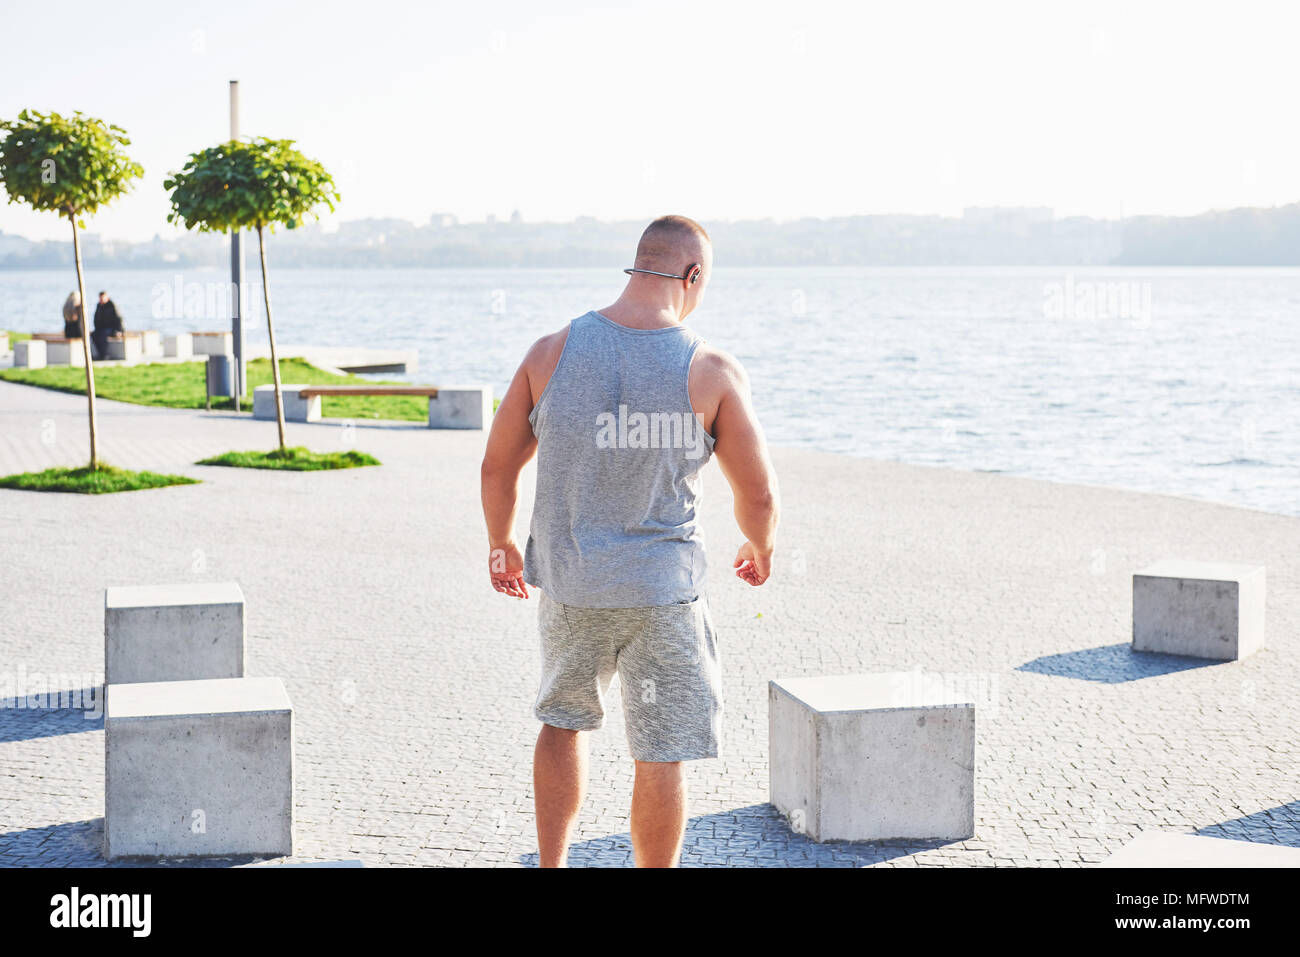 Young male jogger athlete training and doing workout outdoors in city - Stock Image